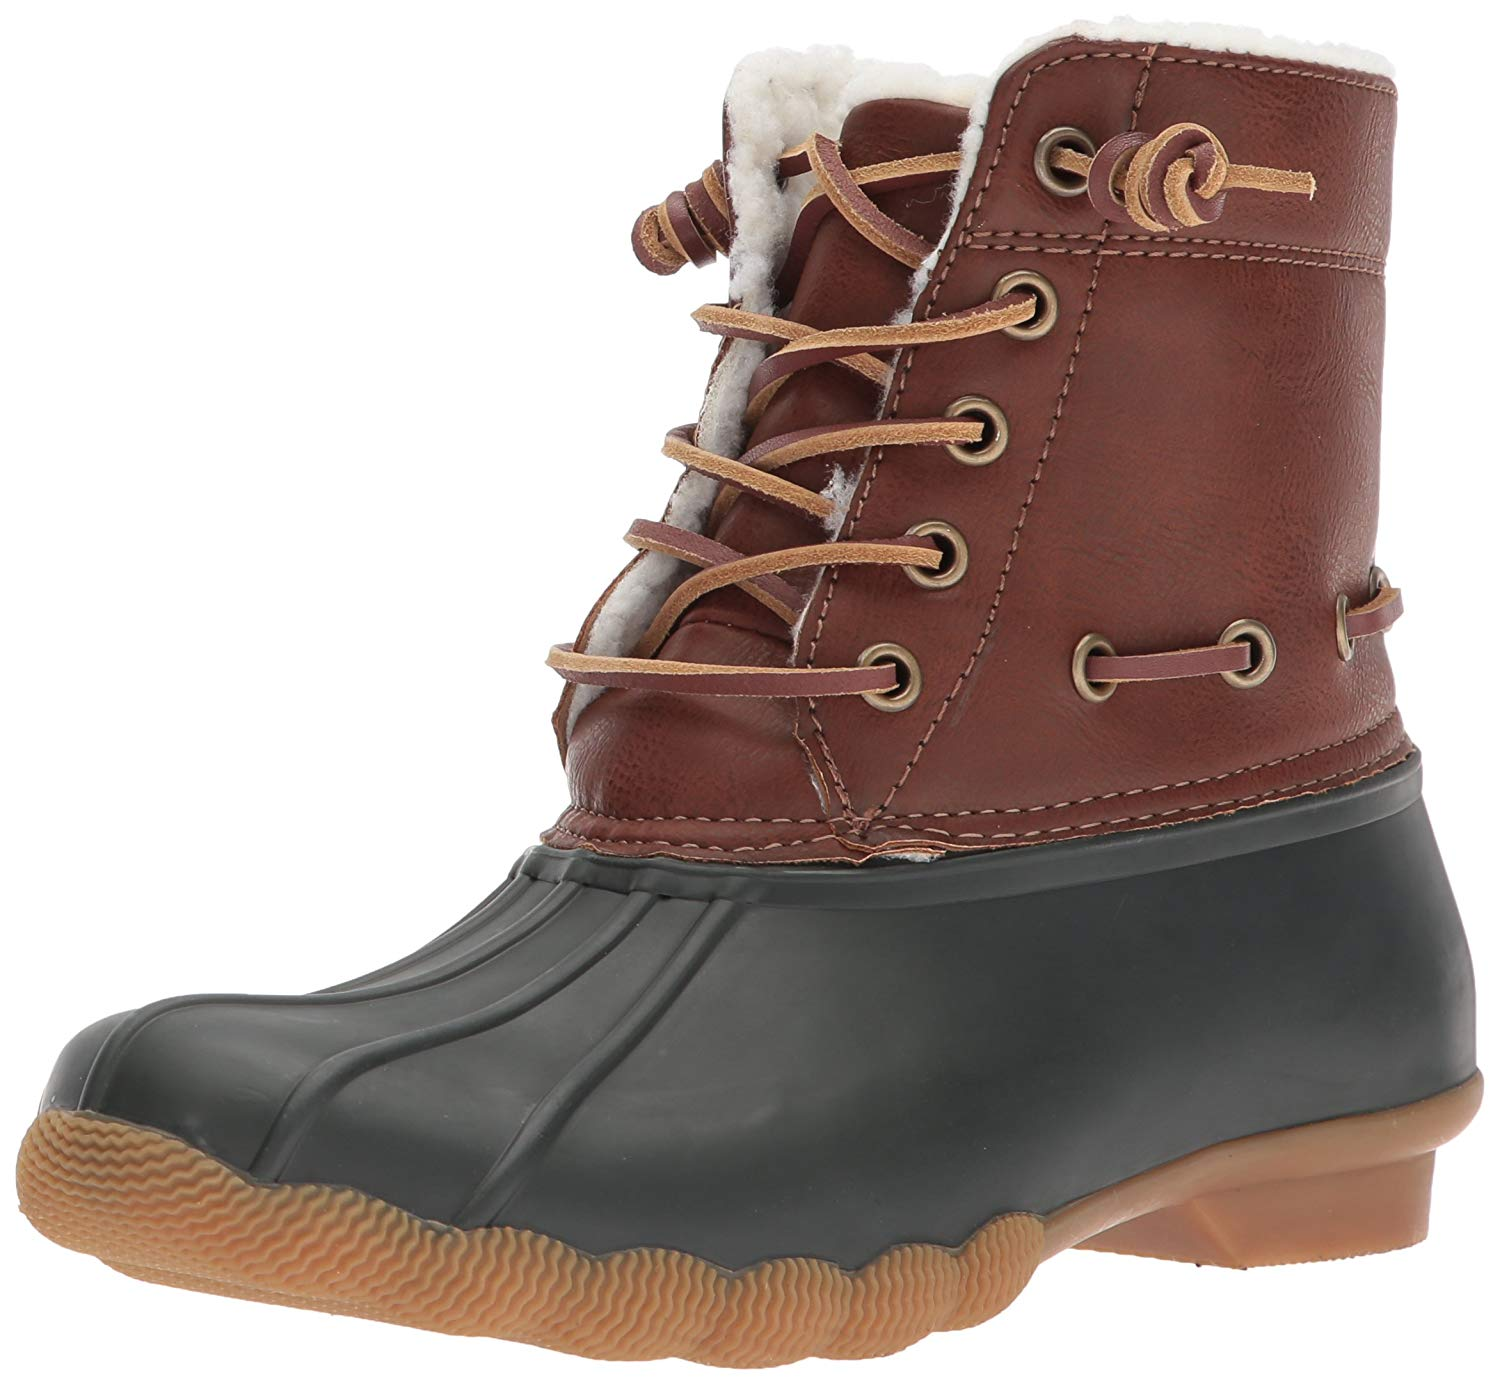 706809ca9a8 PairMySole  Steve Madden Womens Torrent Closed Toe Ankle Rainboots ...